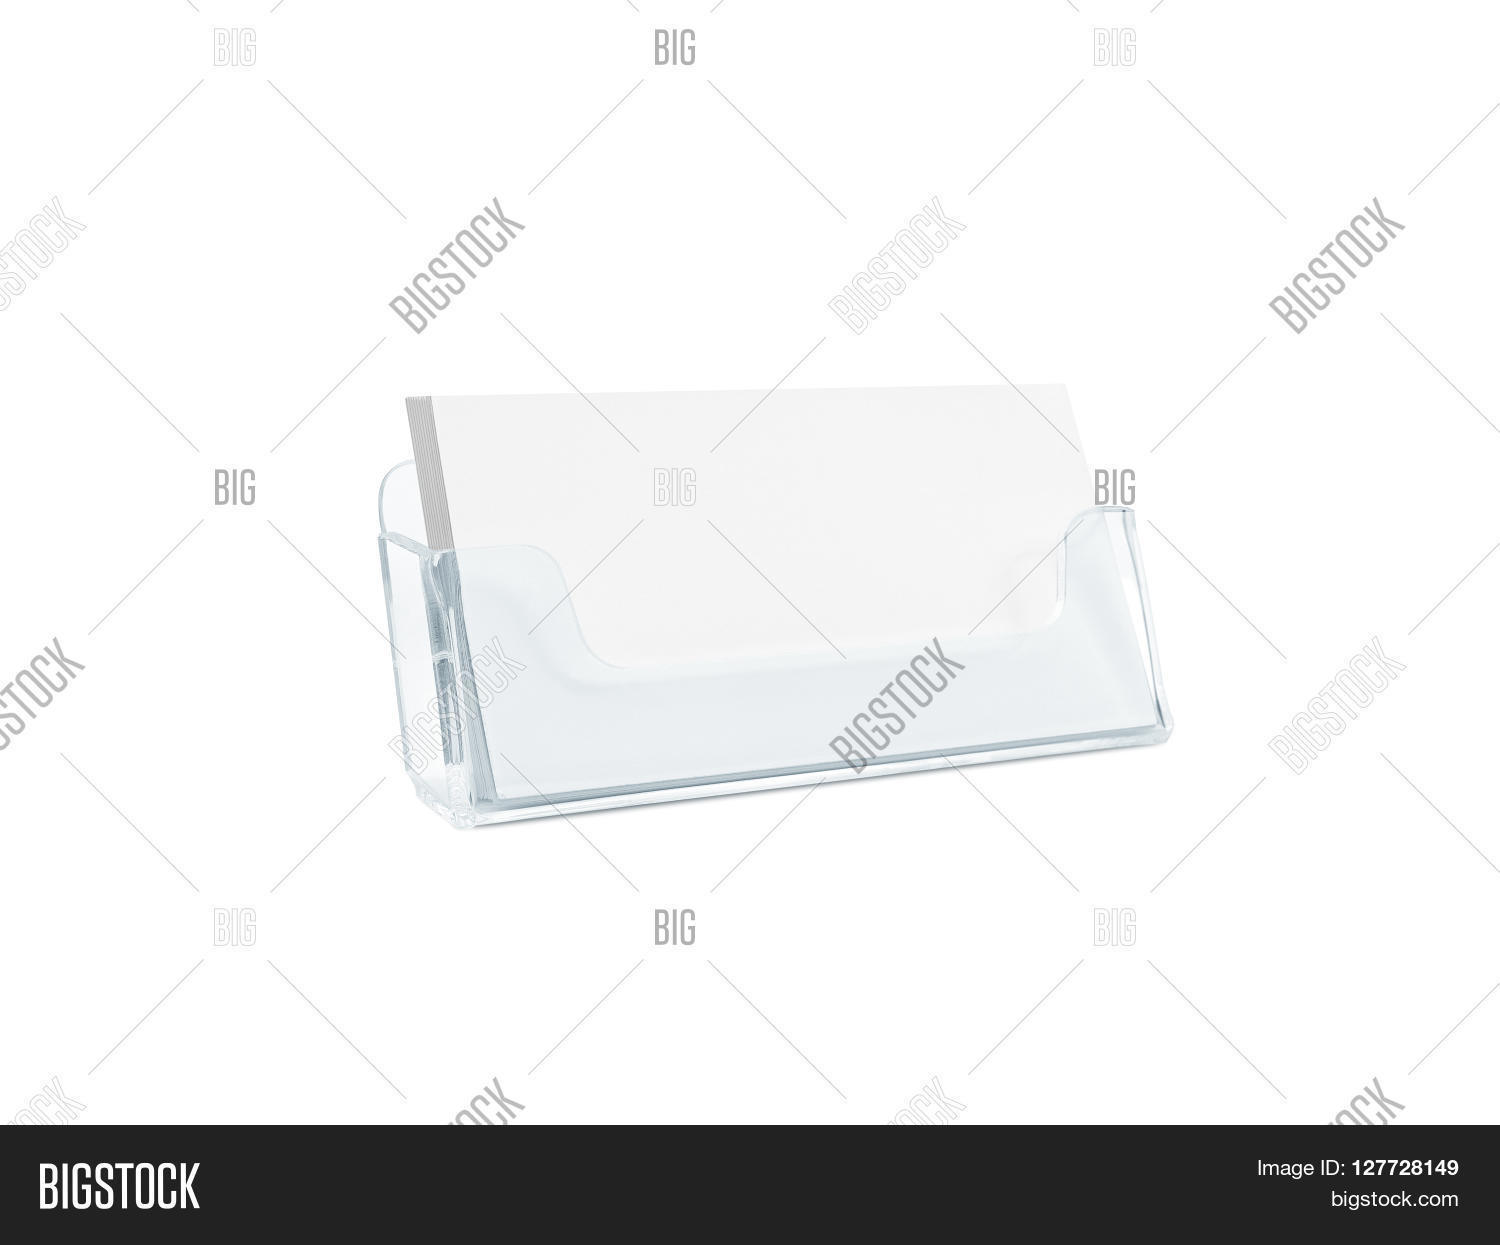 White Business Card Image & Photo (Free Trial) | Bigstock